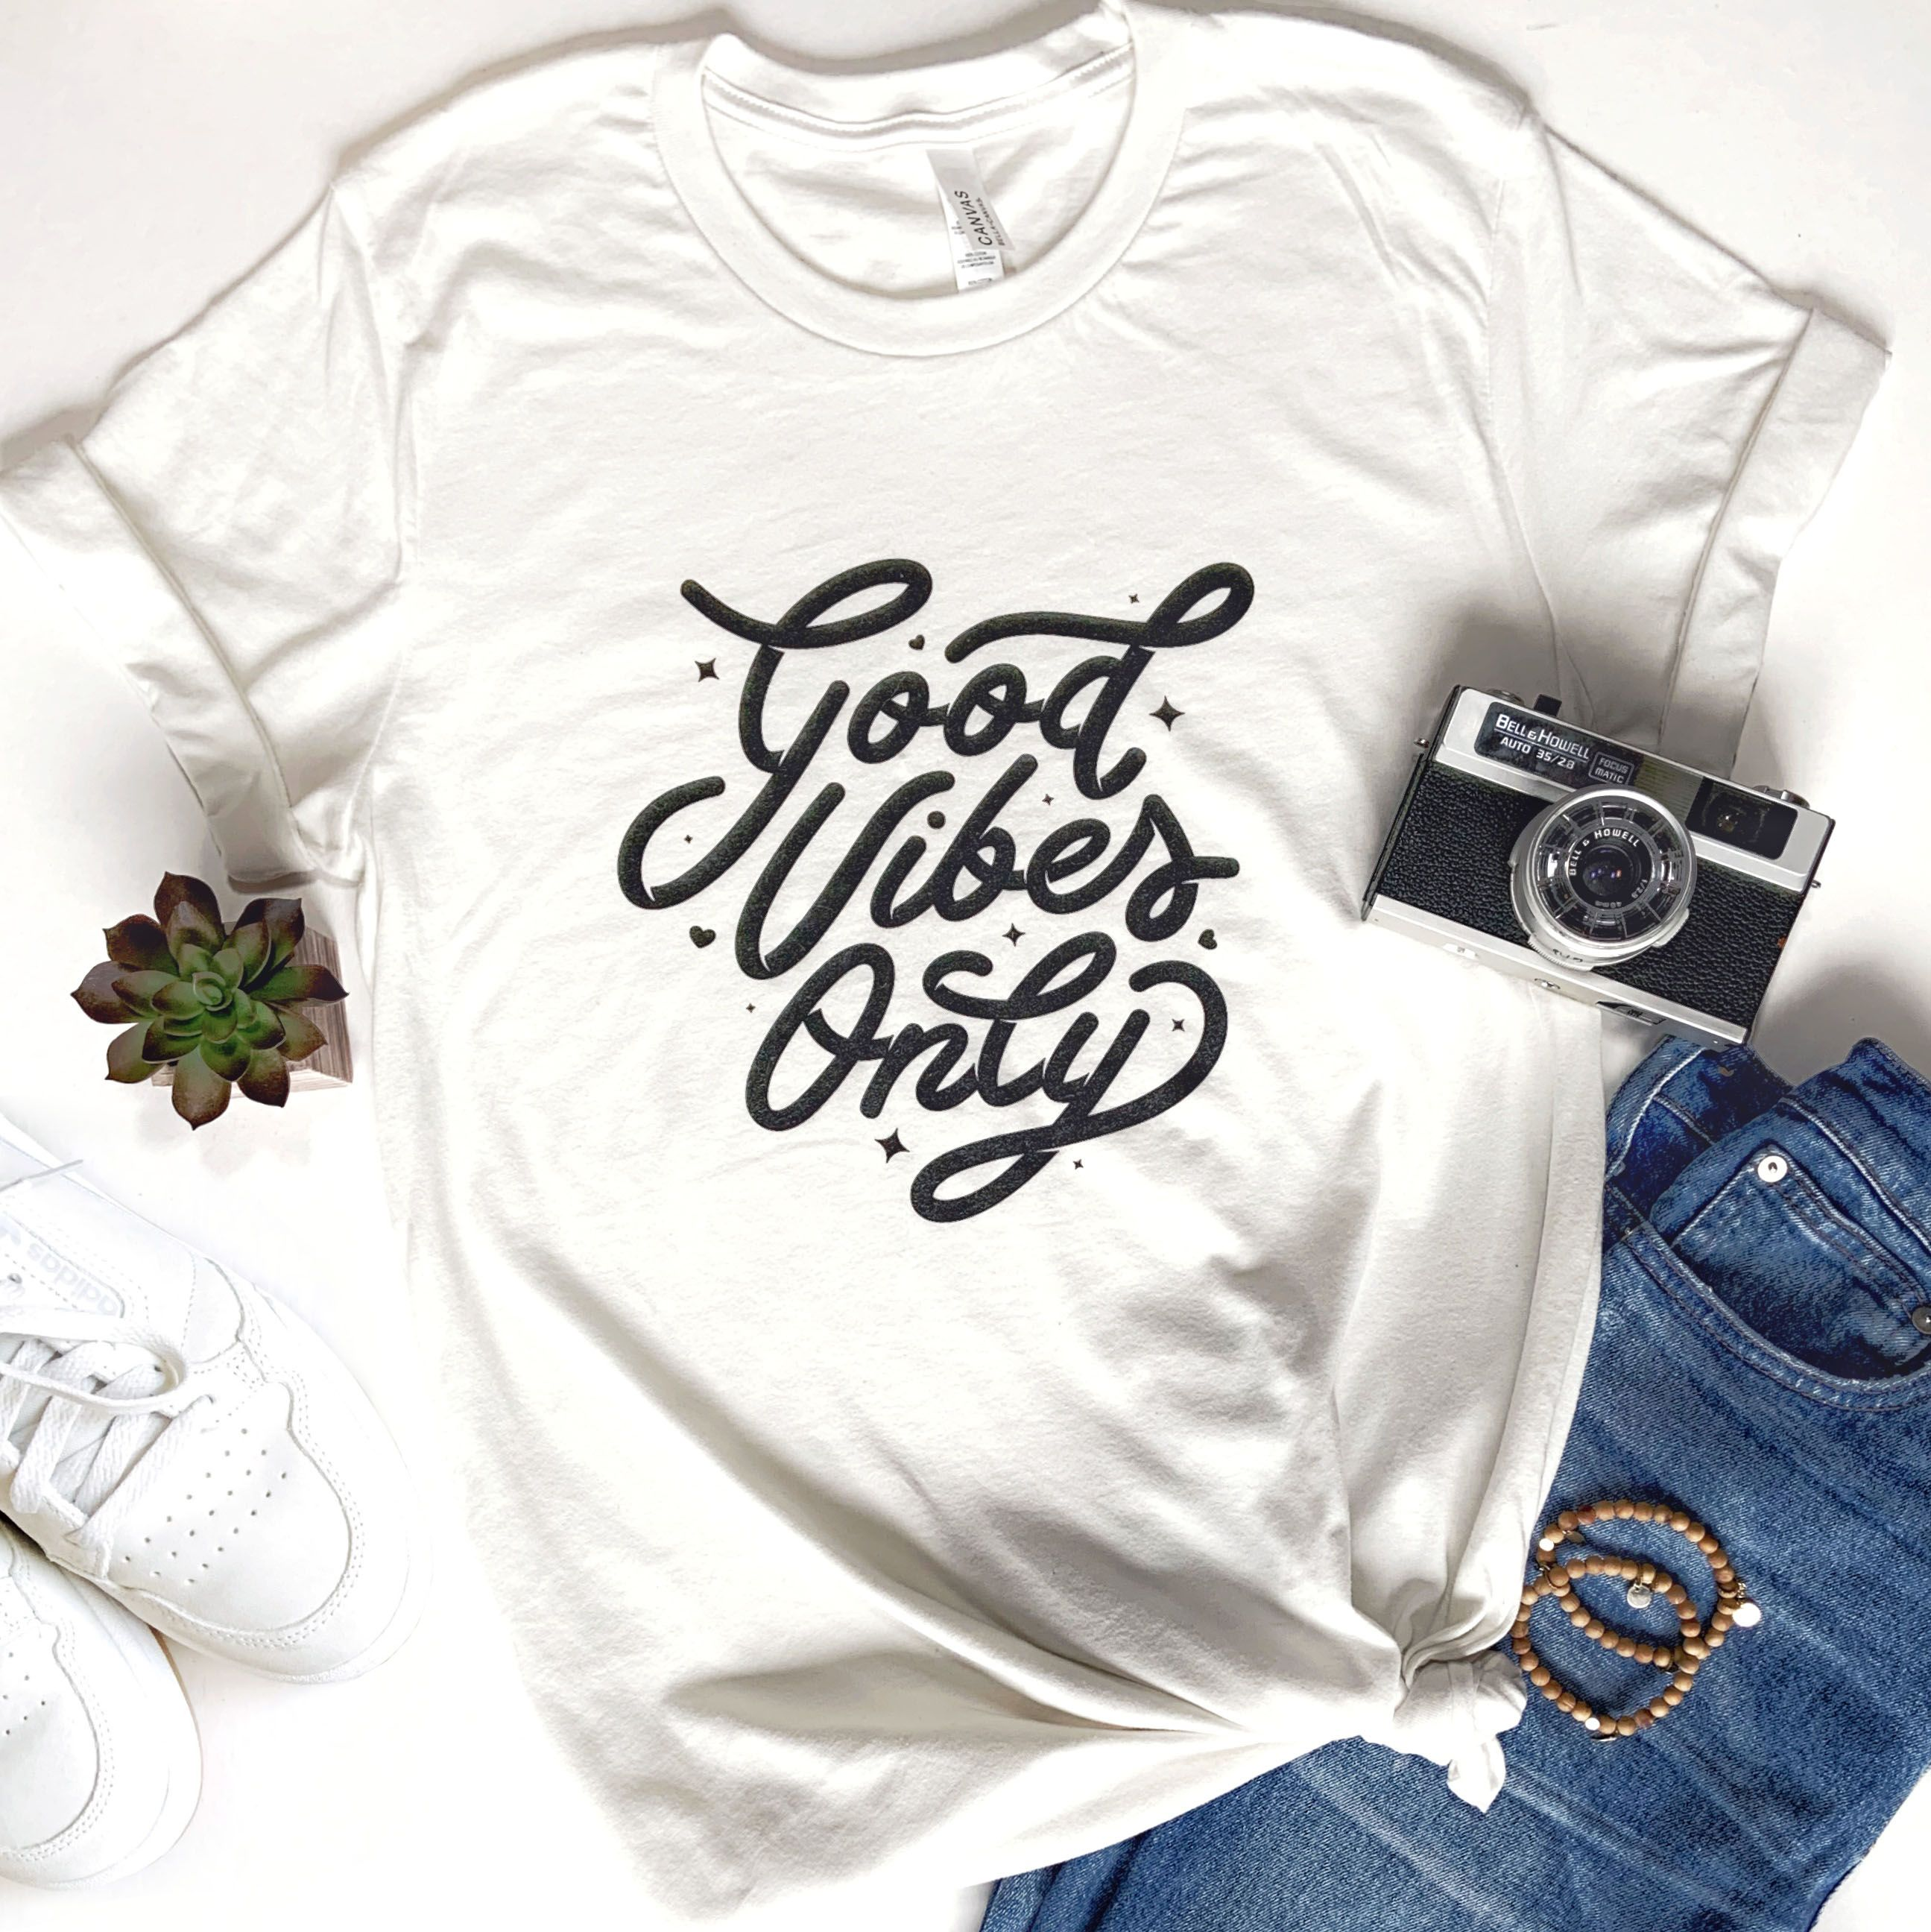 Bella Canvas Bella Canvas tshirt,Graphic tee,Gift ideas Believe Inspirational Gifts Good Vibes shirt Inspirational Quotes Good Vibes